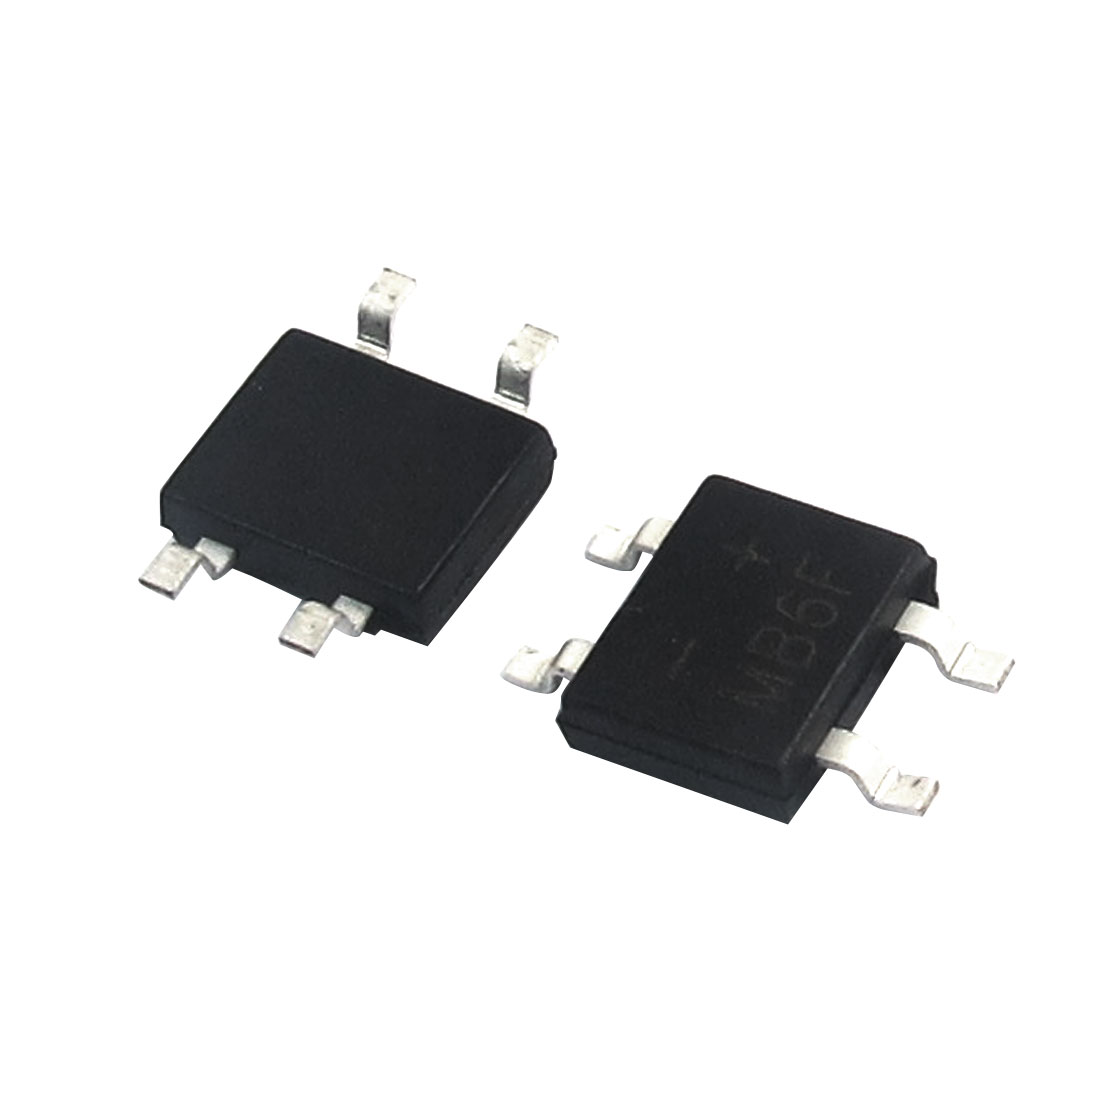 2pcs MB6F Single Phase Glass Passivated Bridge Rectifier 600V 0.5A